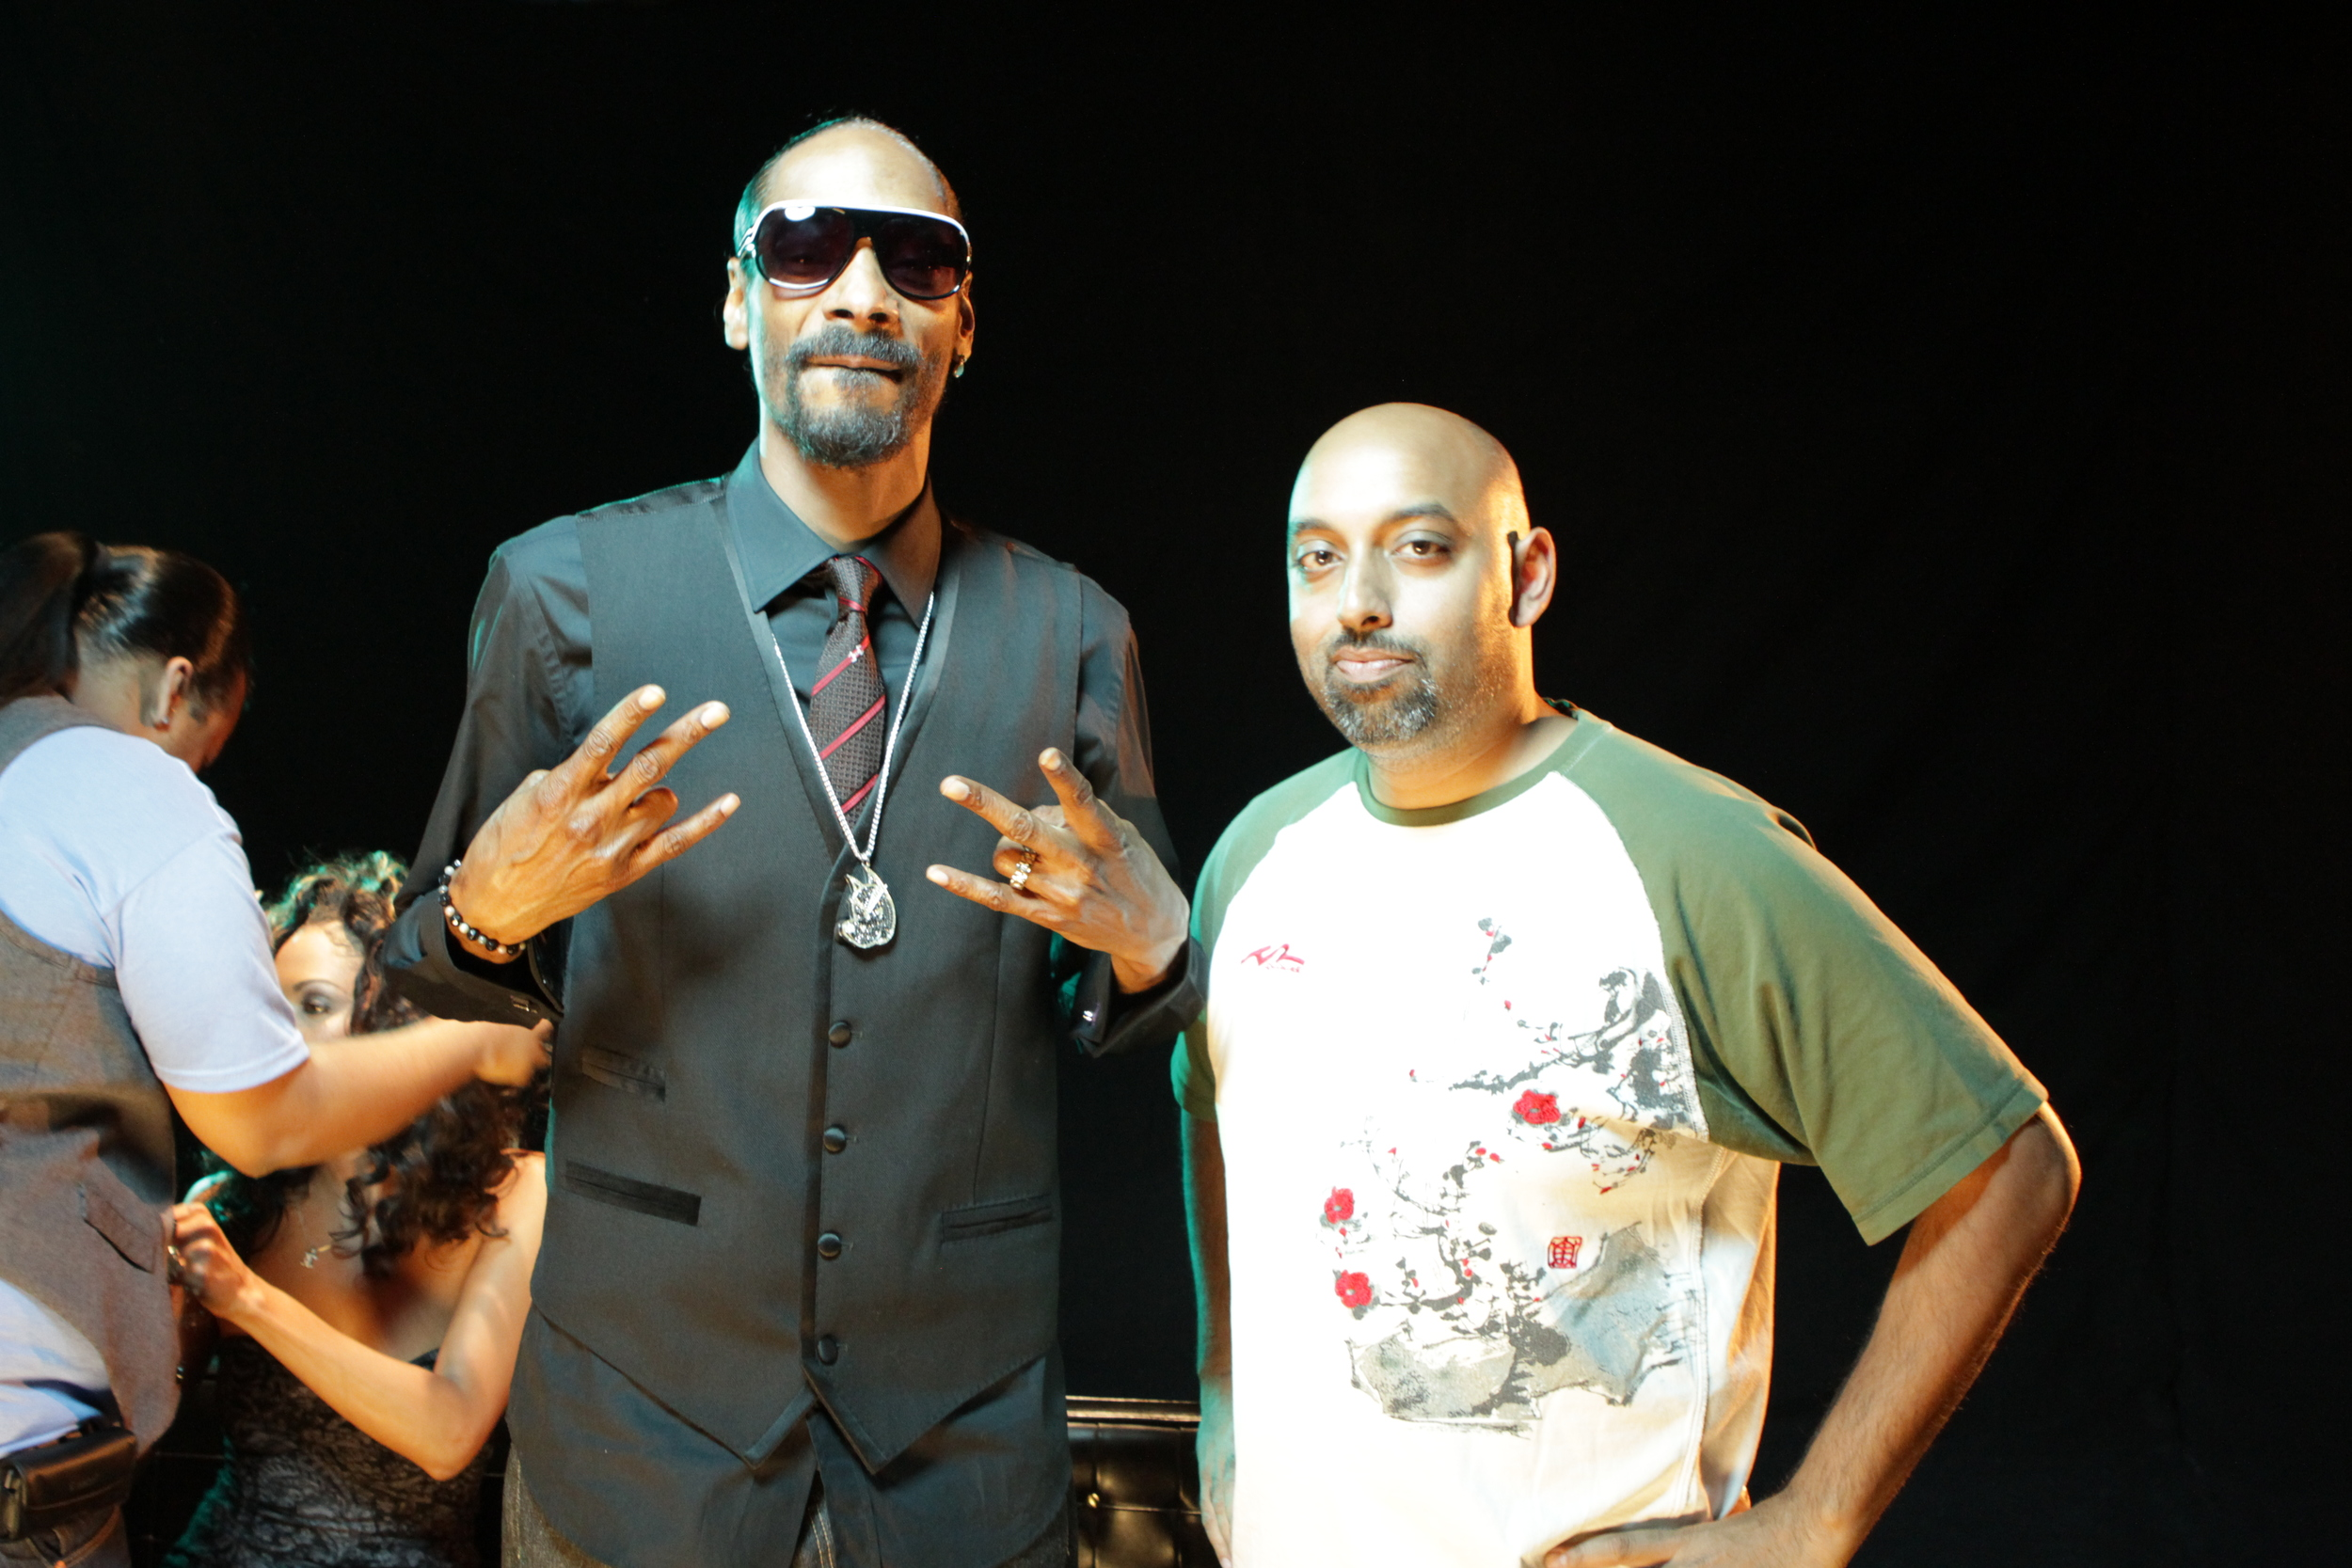 Fun with Snoop